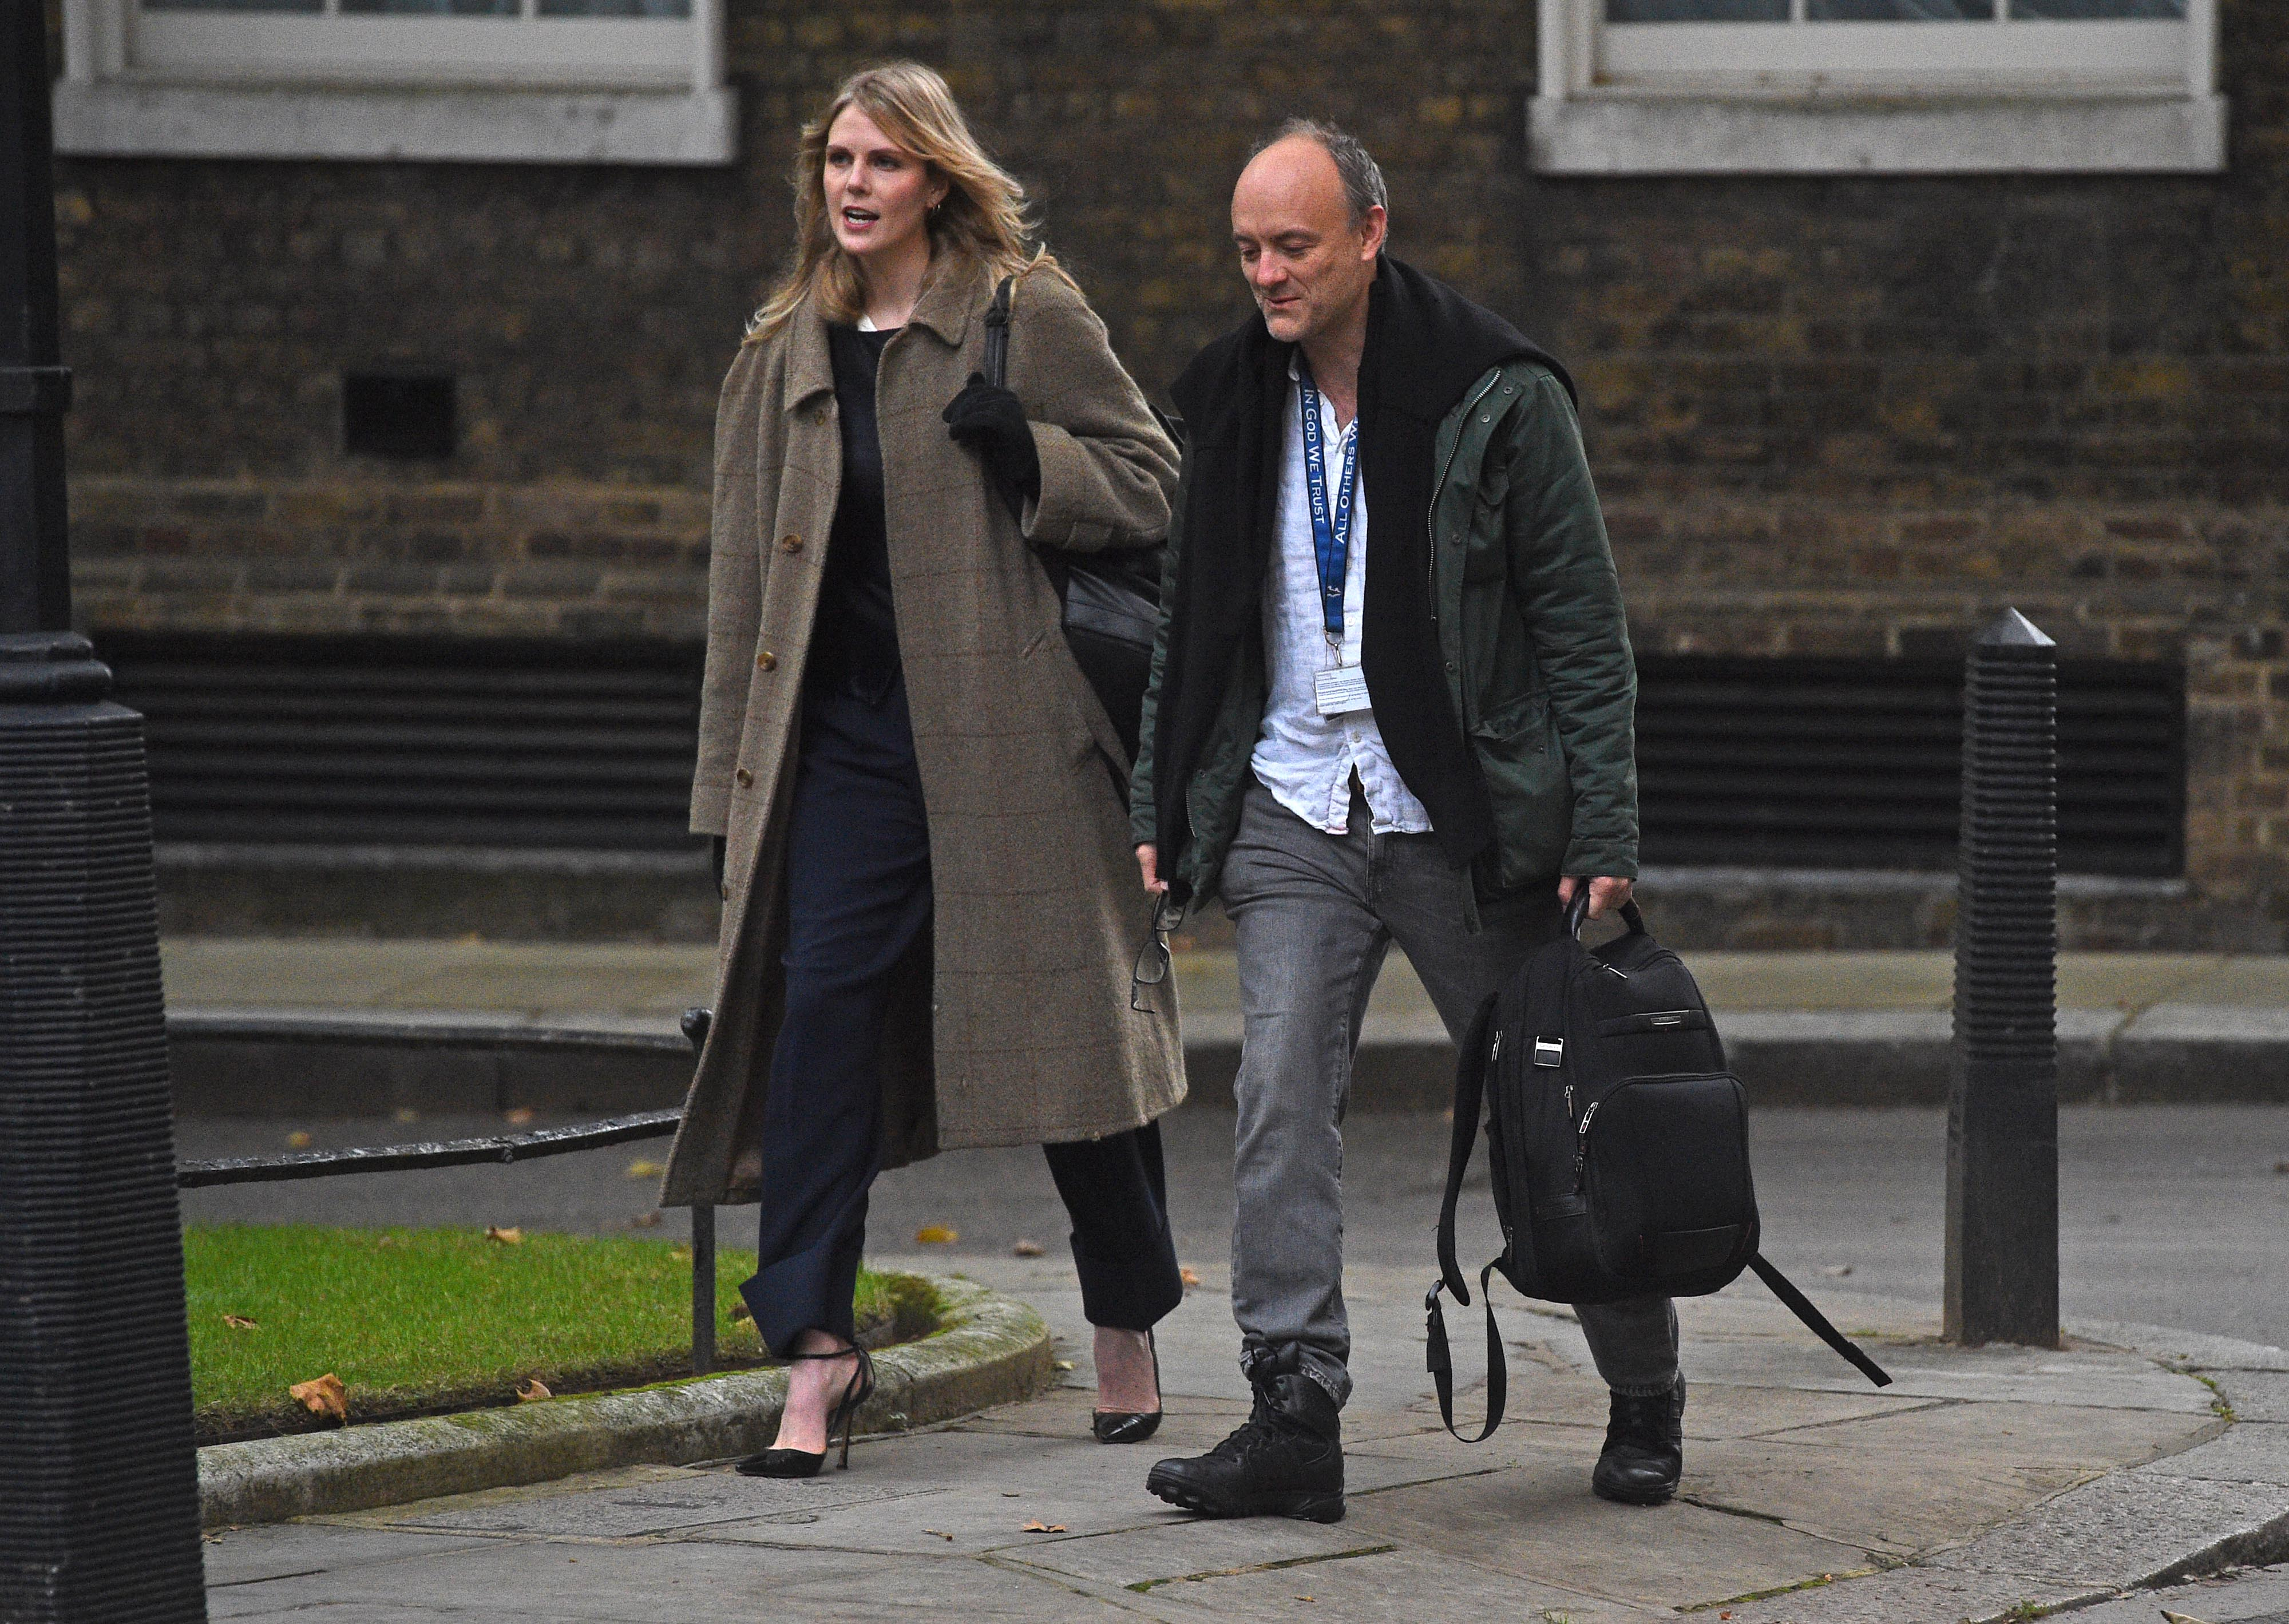 Senior aide to the Prime Minister Dominic Cummings and UK Government Adviser Cleo Watson arrive in Downing Street London, ahead of a meeting of the Government's emergency committee Cobra to discuss areas suffering a surge in Covid-19 and measures to combat the spread of the virus.